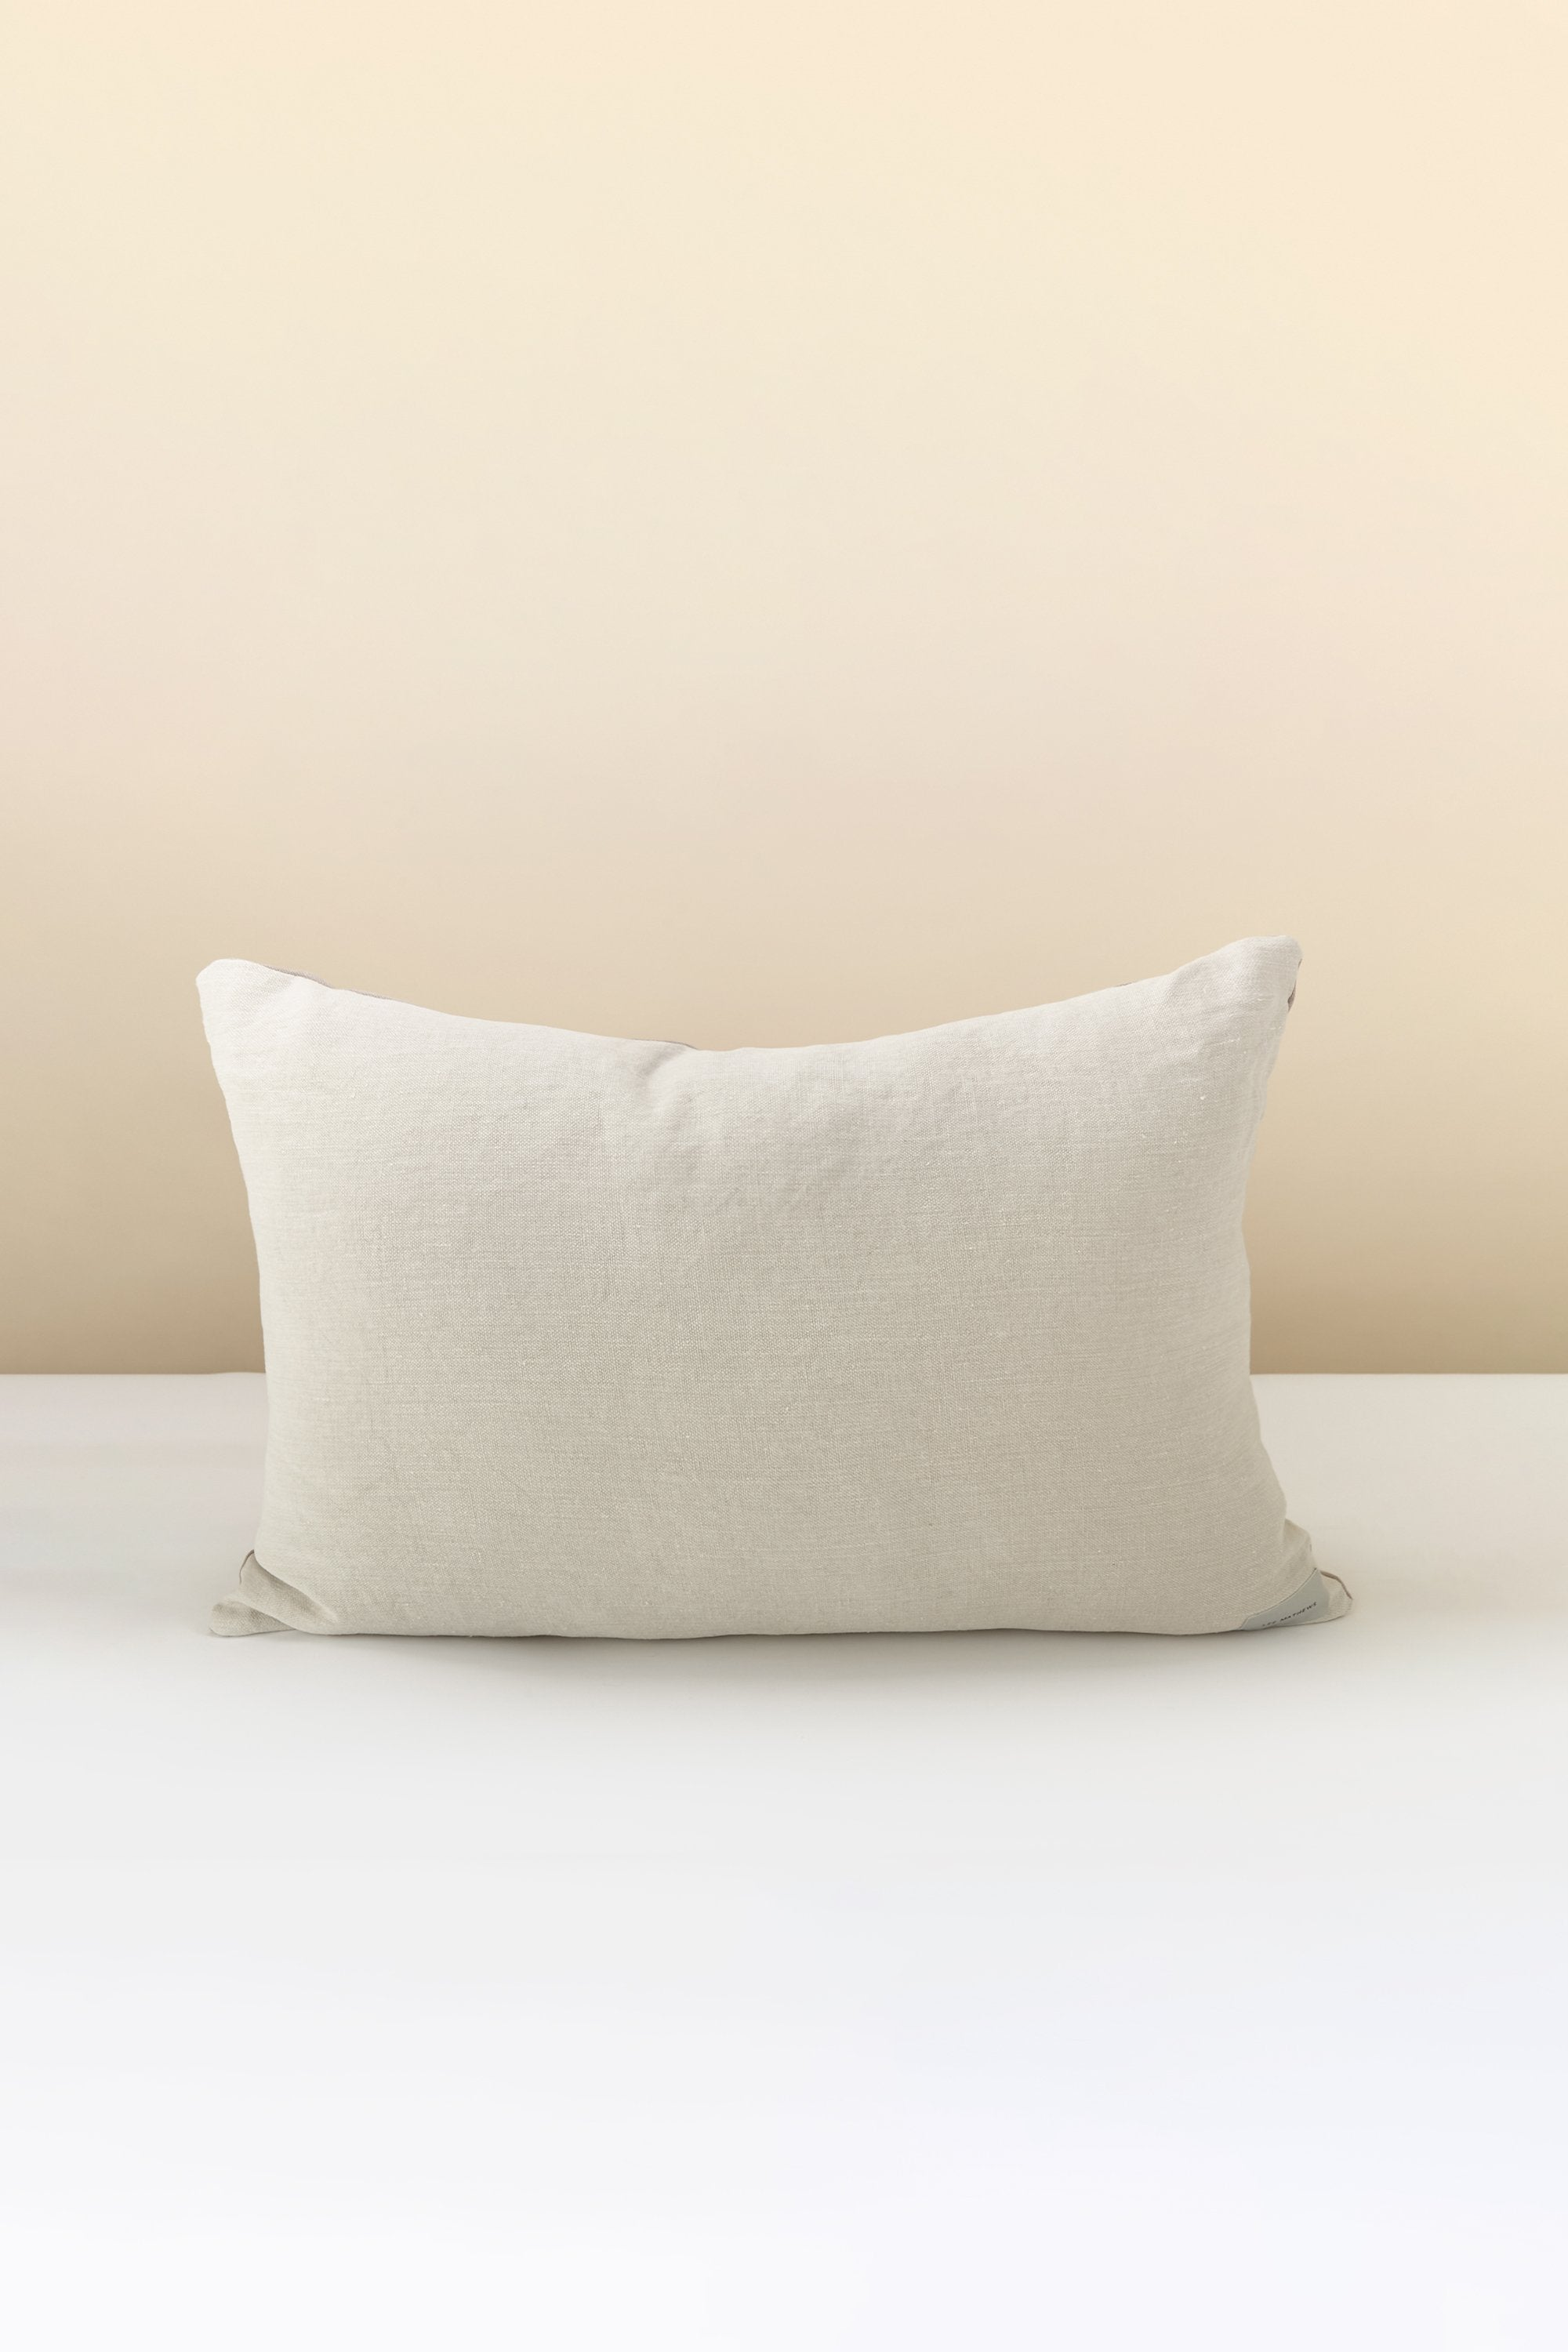 Lee Mathews Linen Rectangle Pillow - Small